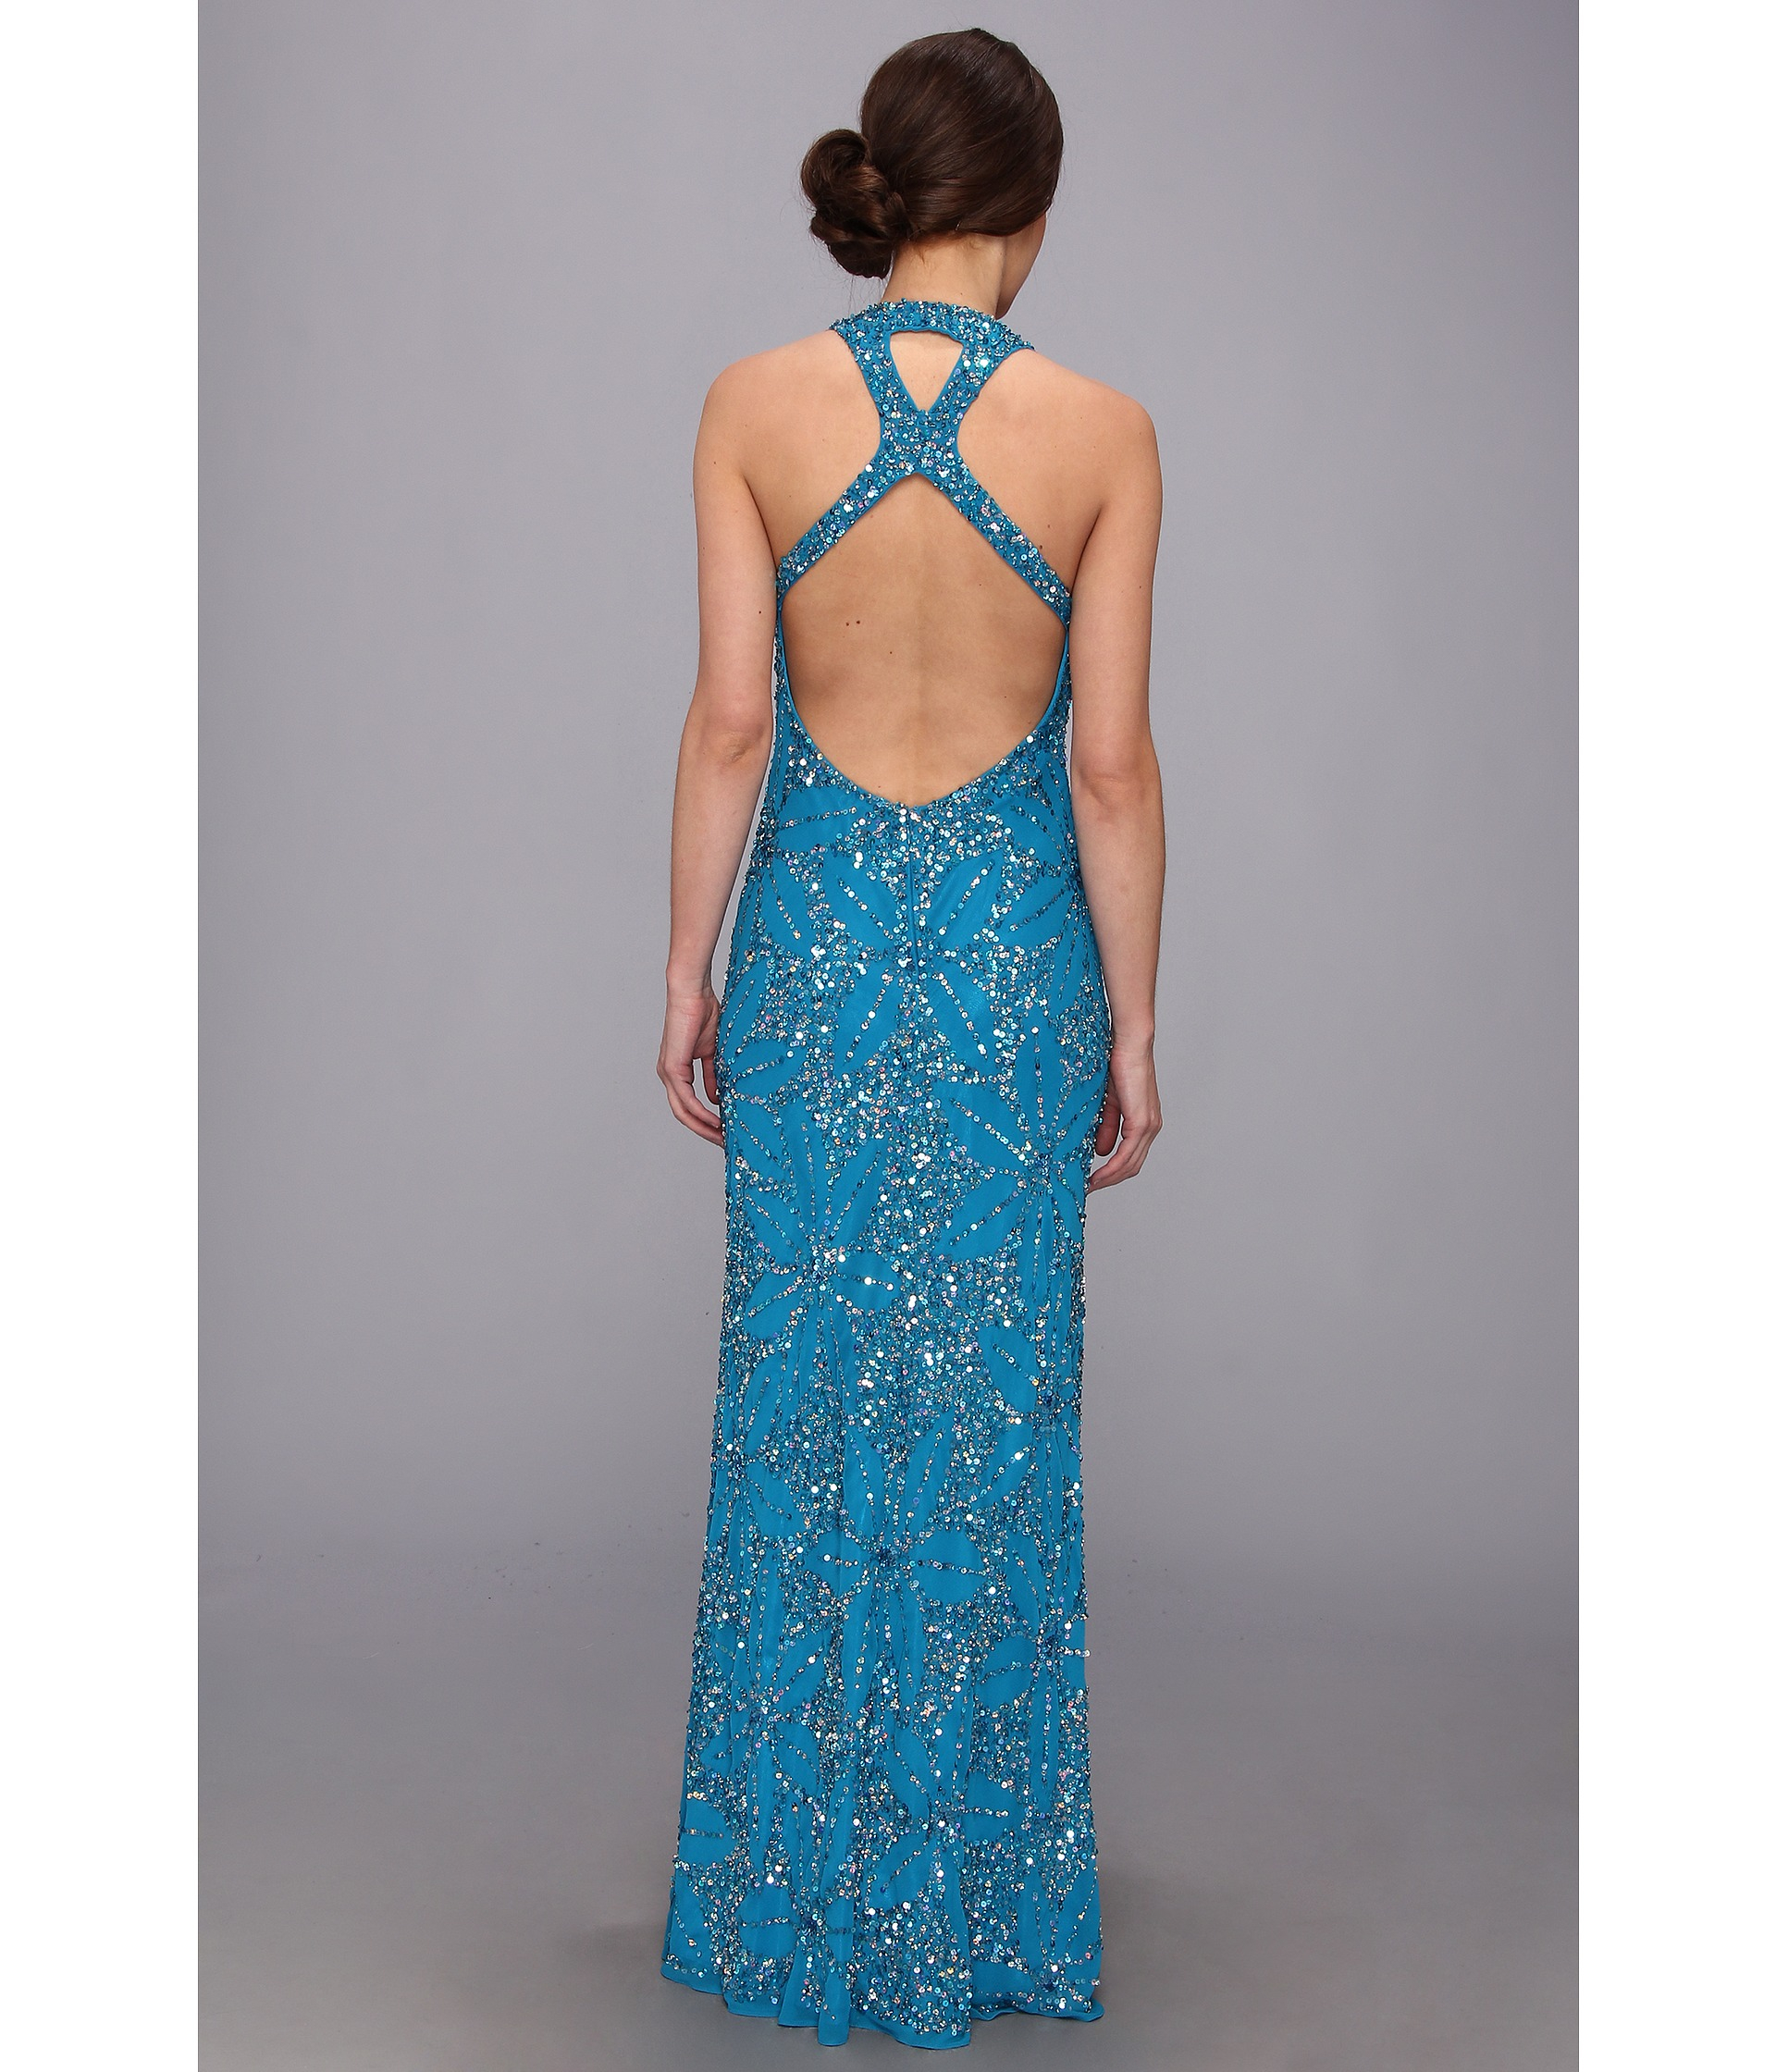 Lyst - Adrianna Papell Dream Girls Bead Prom Gown in Blue